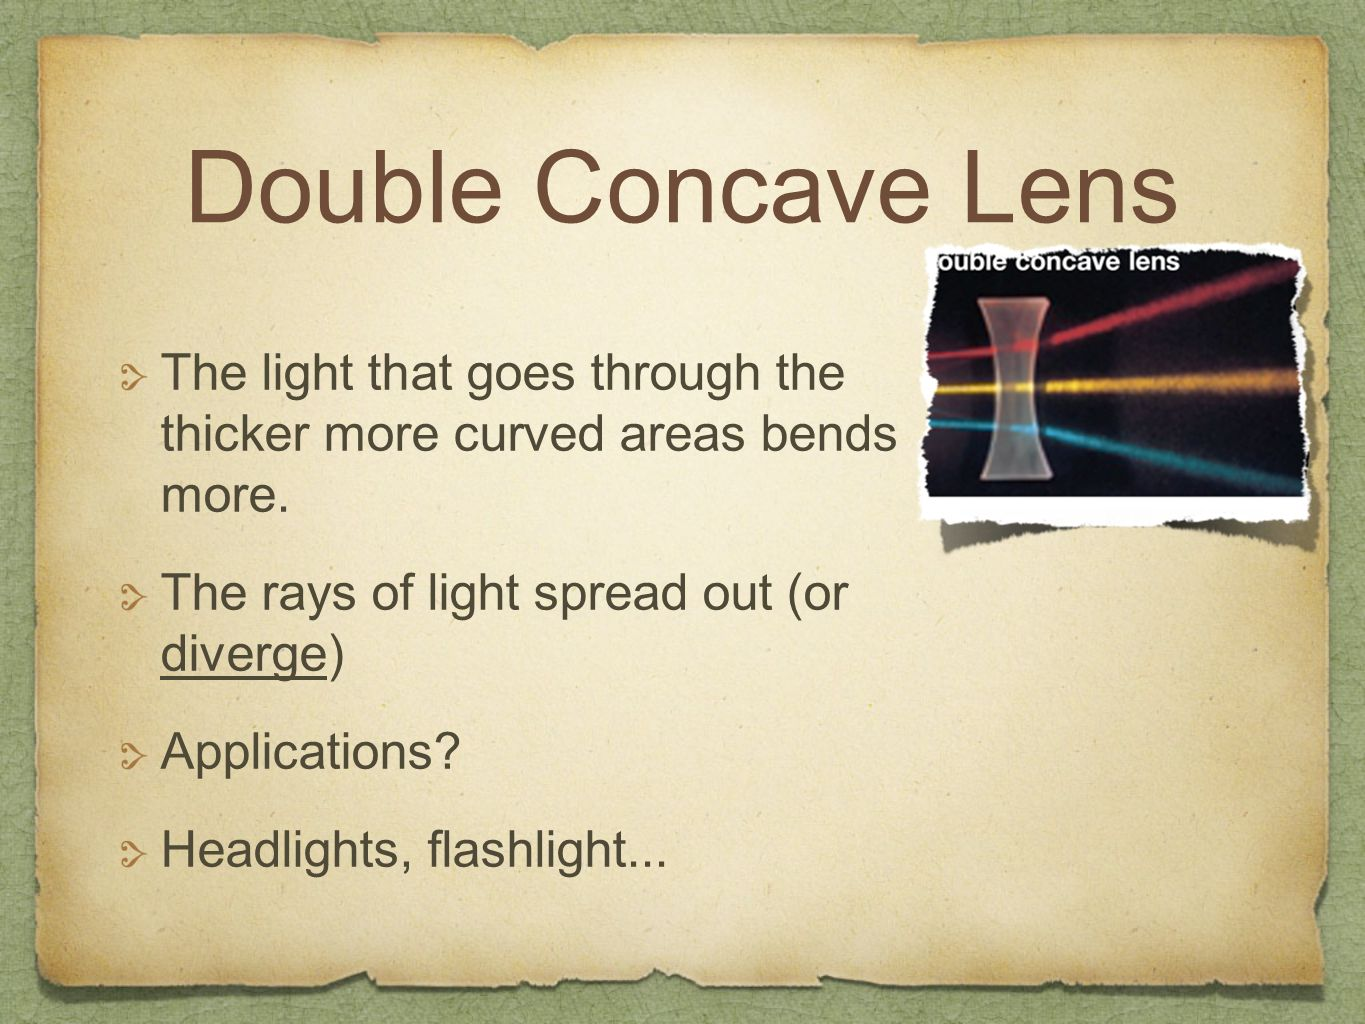 Double Concave Lens The light that goes through the thicker more curved areas bends more. The rays of light spread out (or diverge)